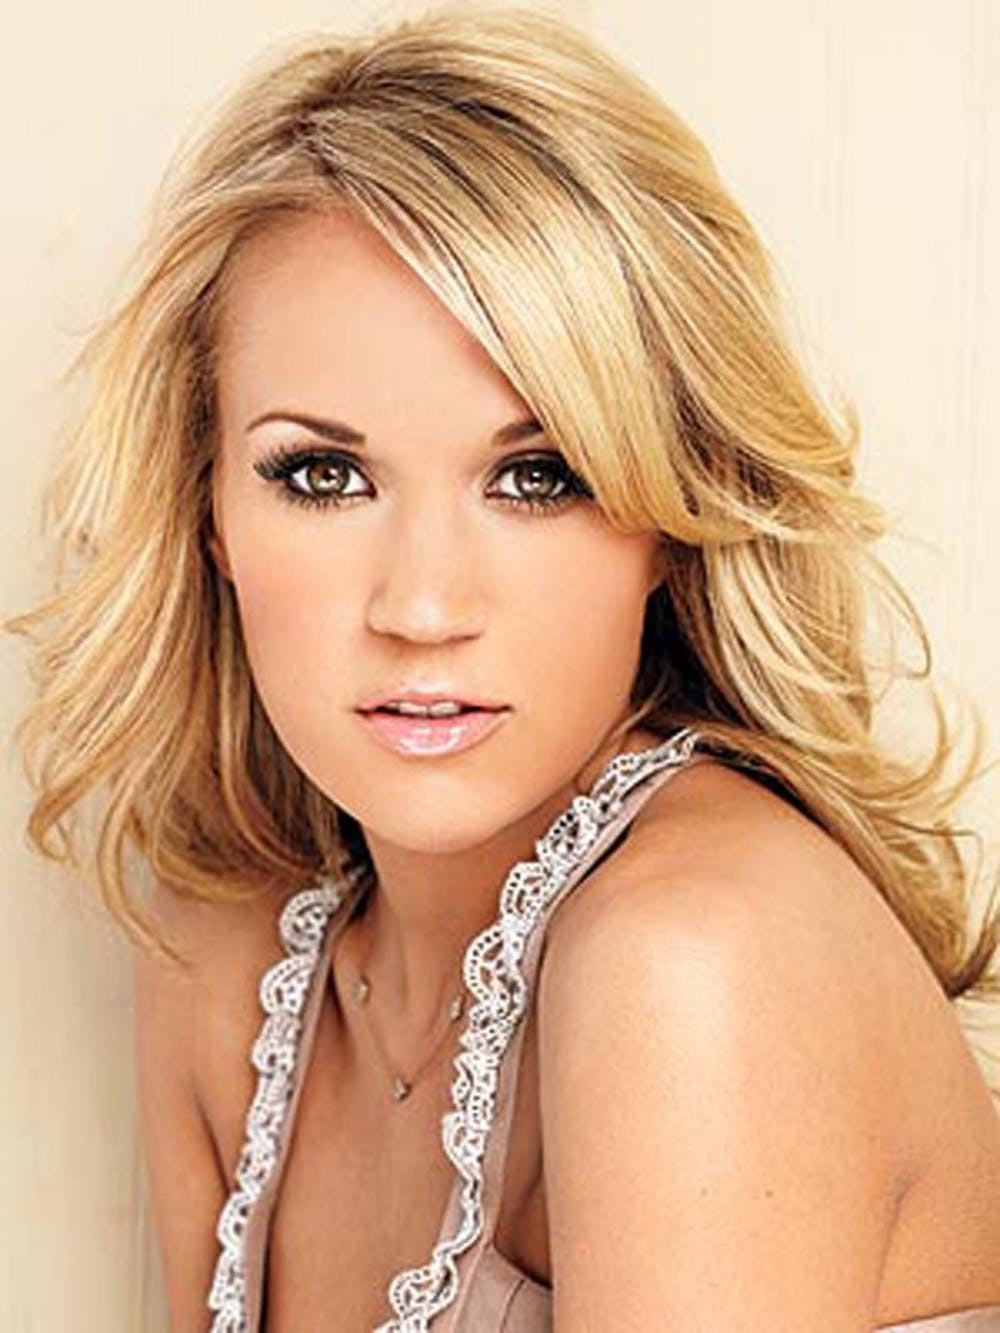 Underwood continues her musical success